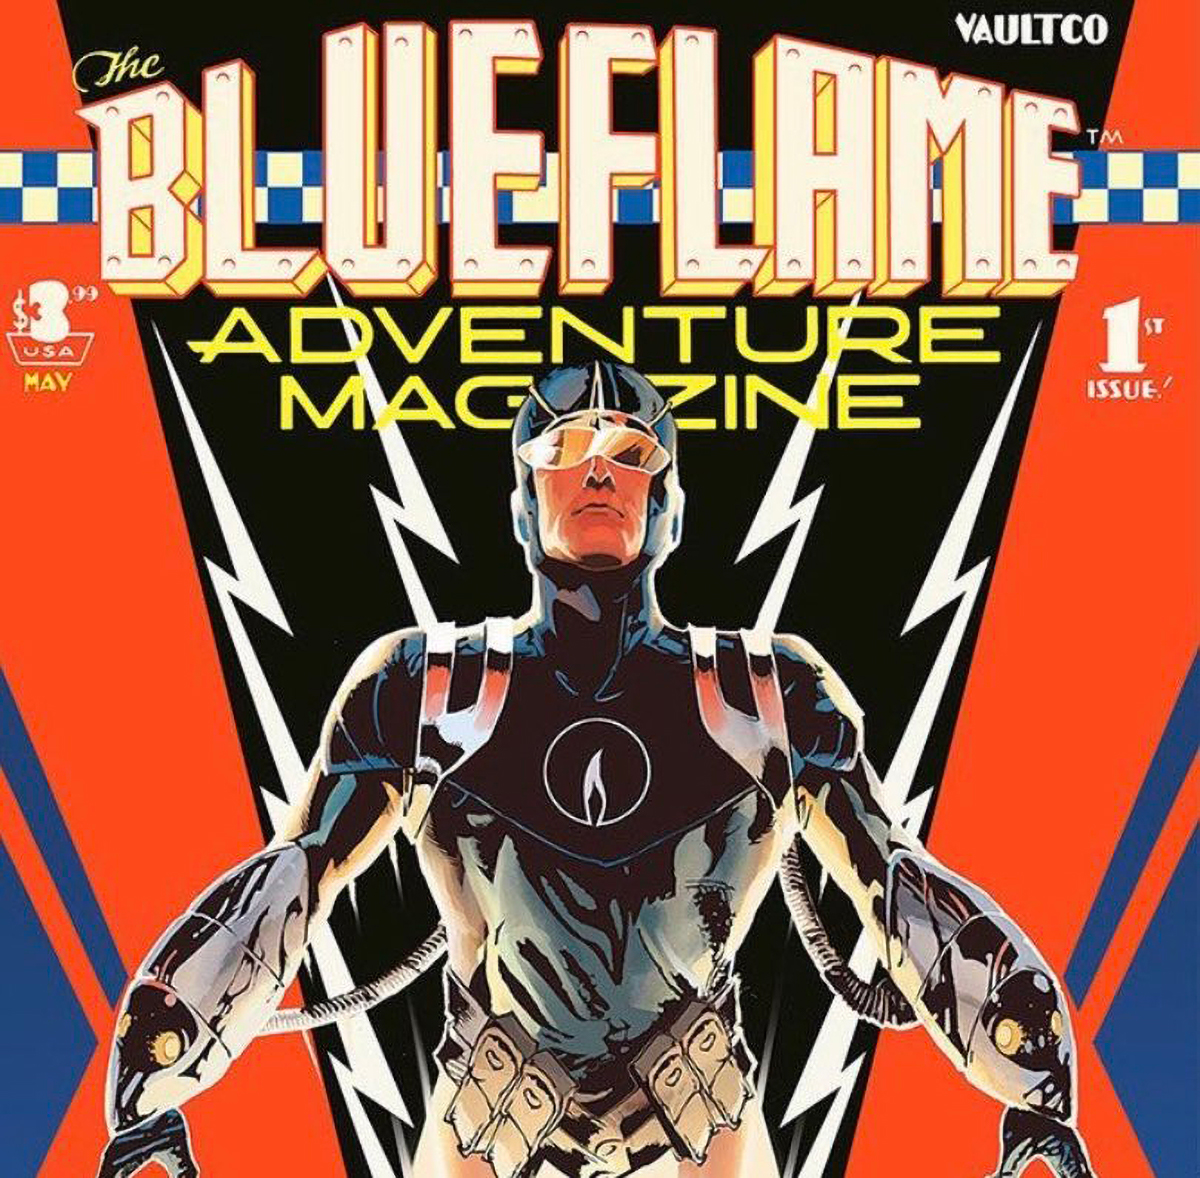 'The Blue Flame' #1 is dynamic, nimble, and thought-provoking